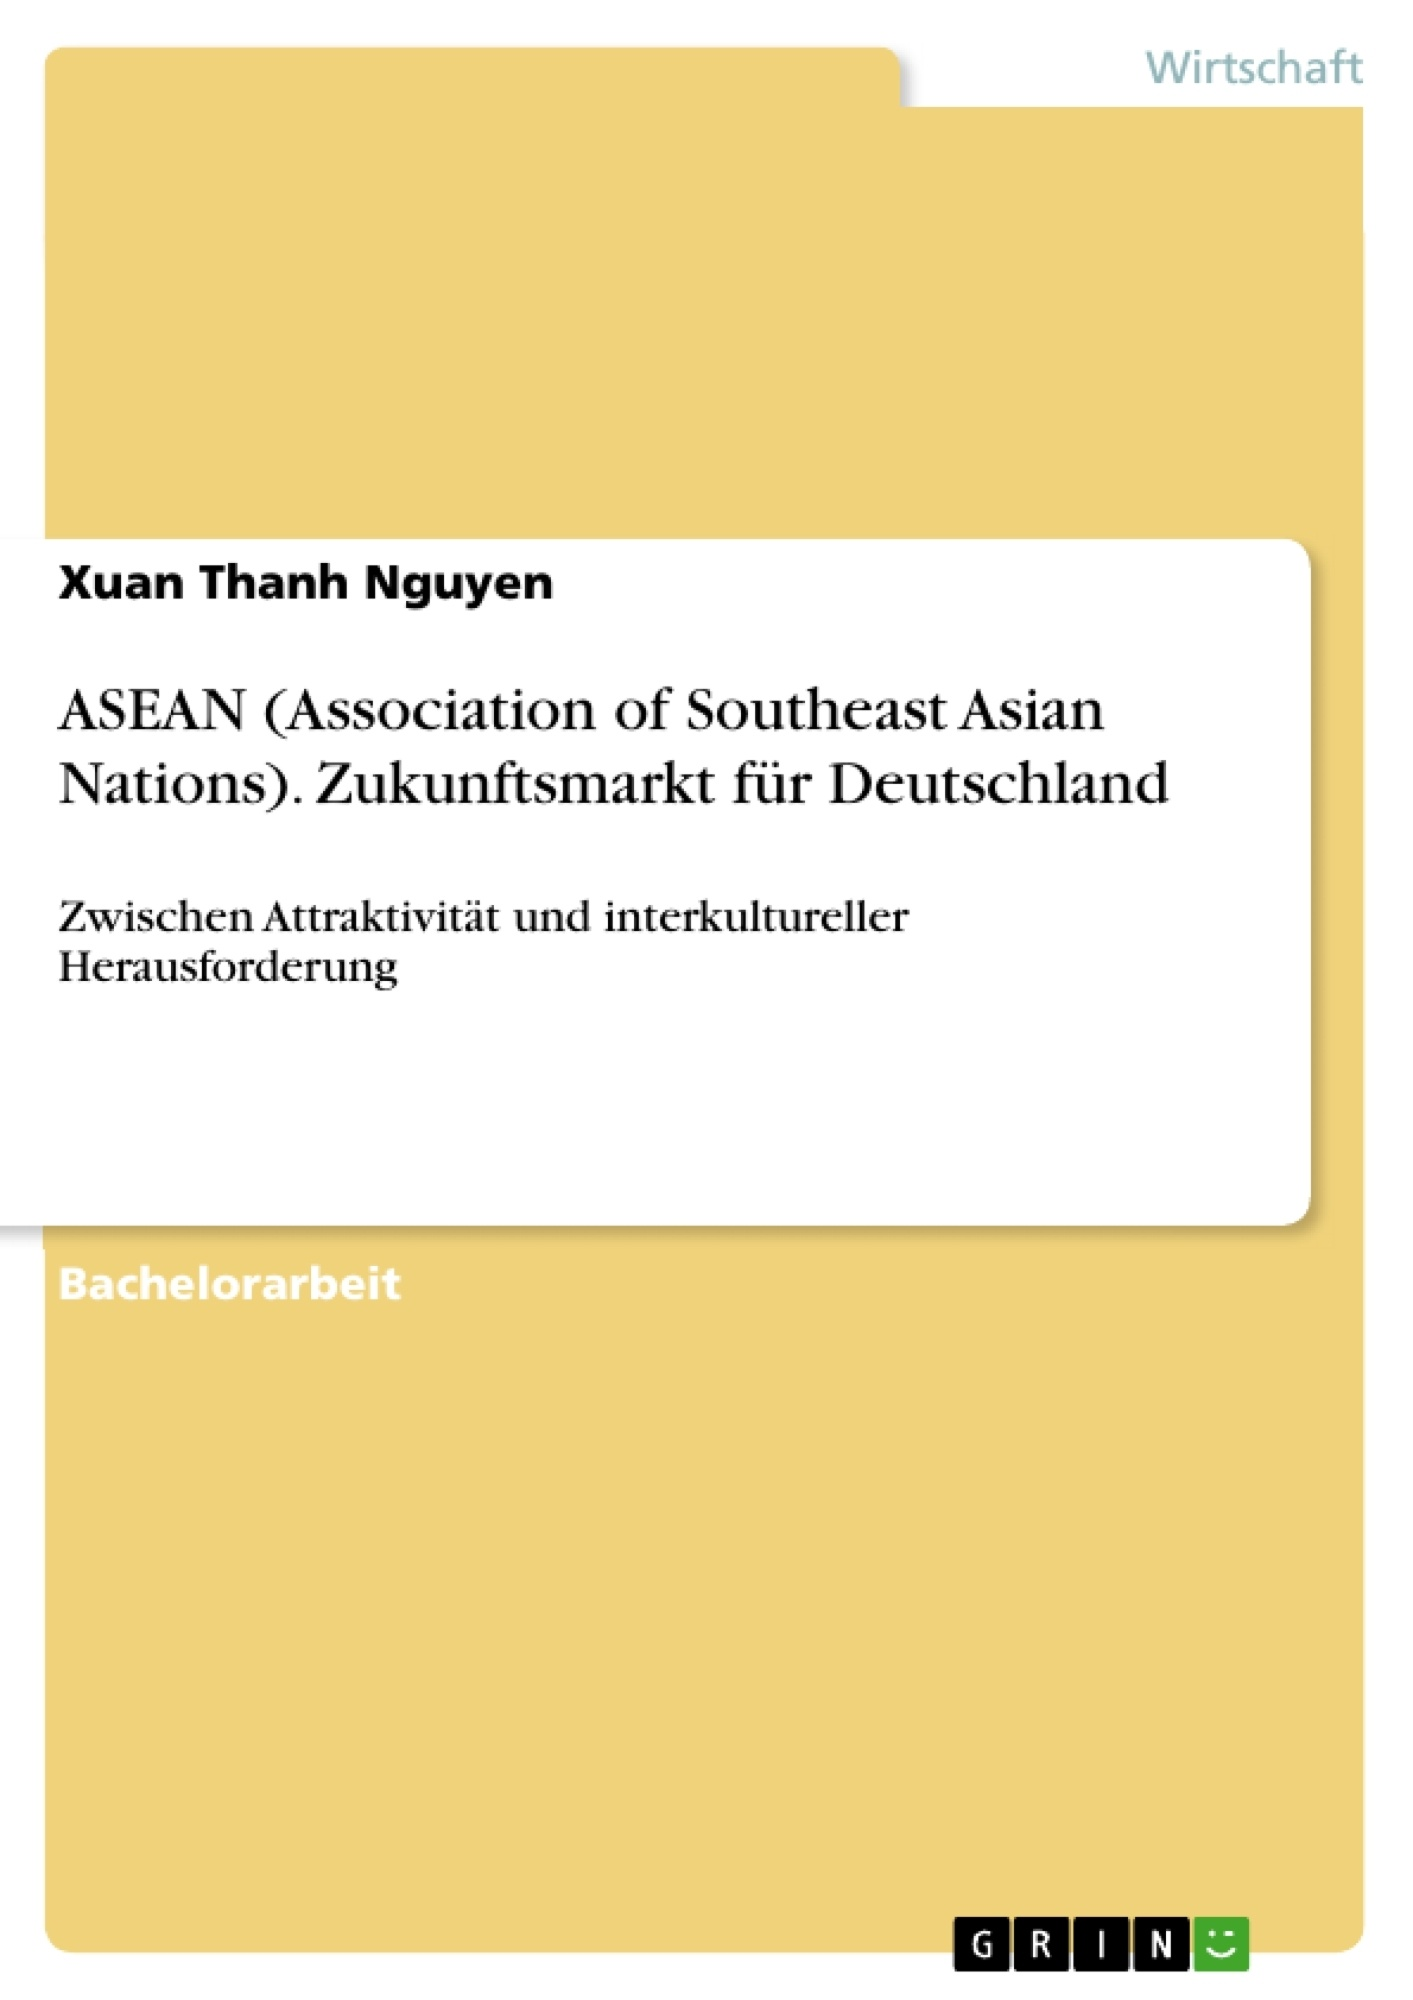 Titel: ASEAN (Association of Southeast Asian Nations). Zukunftsmarkt für Deutschland